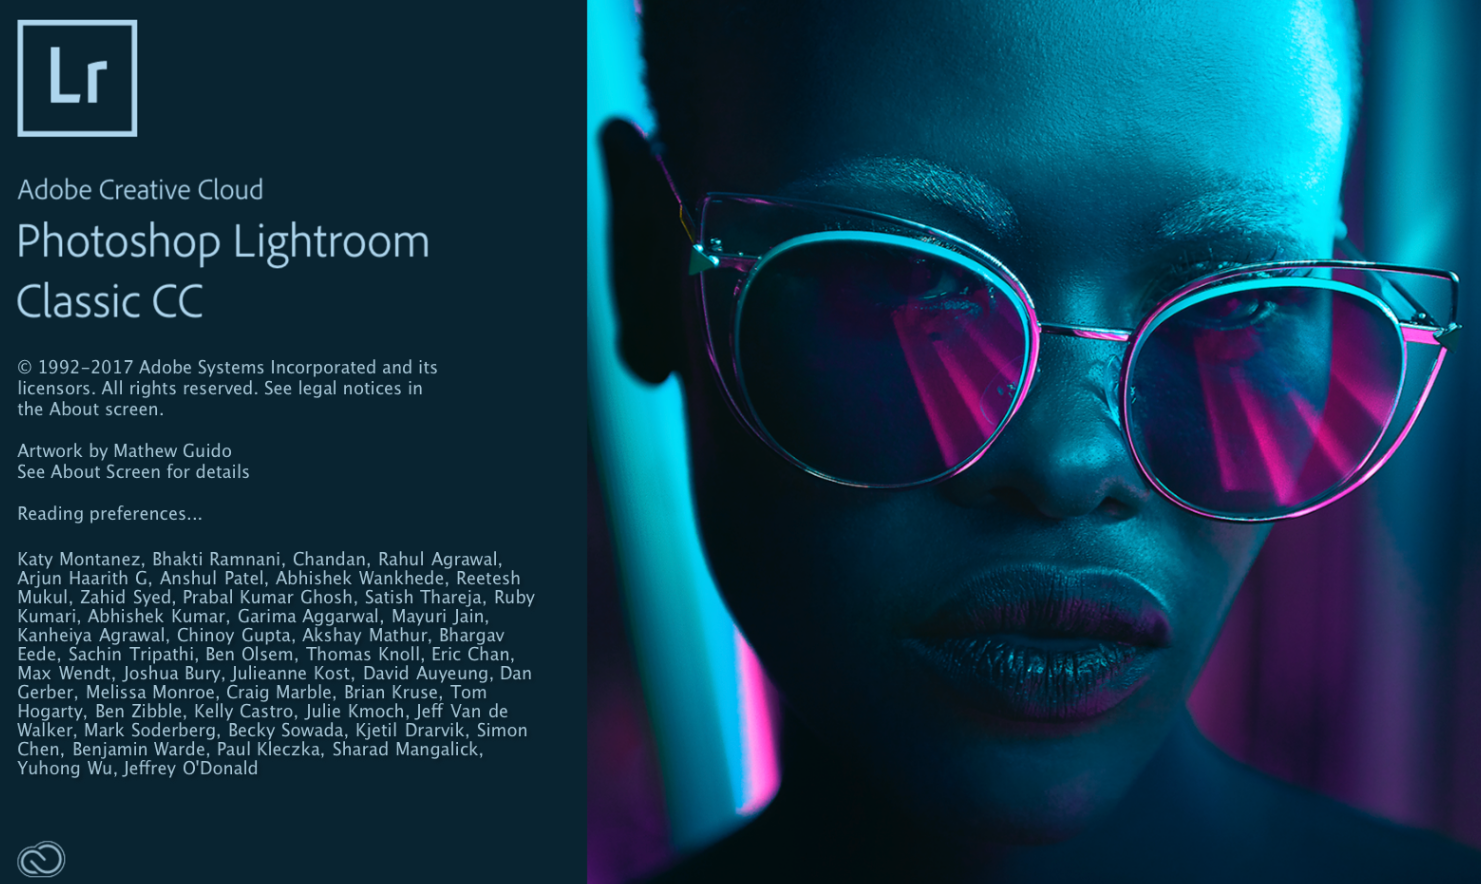 Adobe Photoshop Lightroom CC 2018 Full Cr@ck